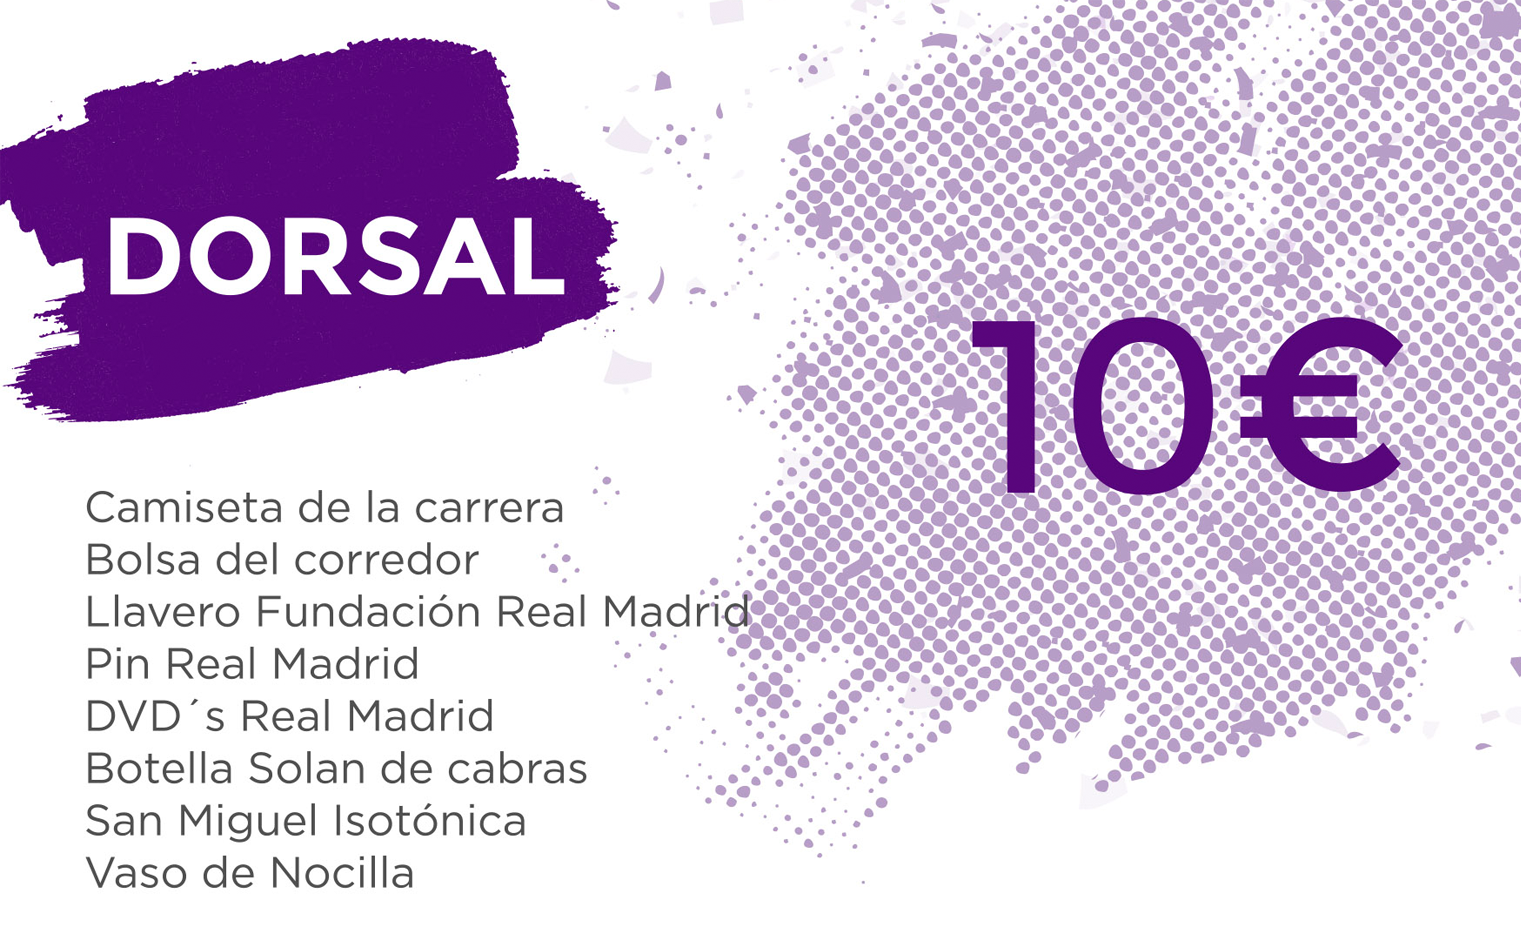 Running Real Madrid Dorsal Normal